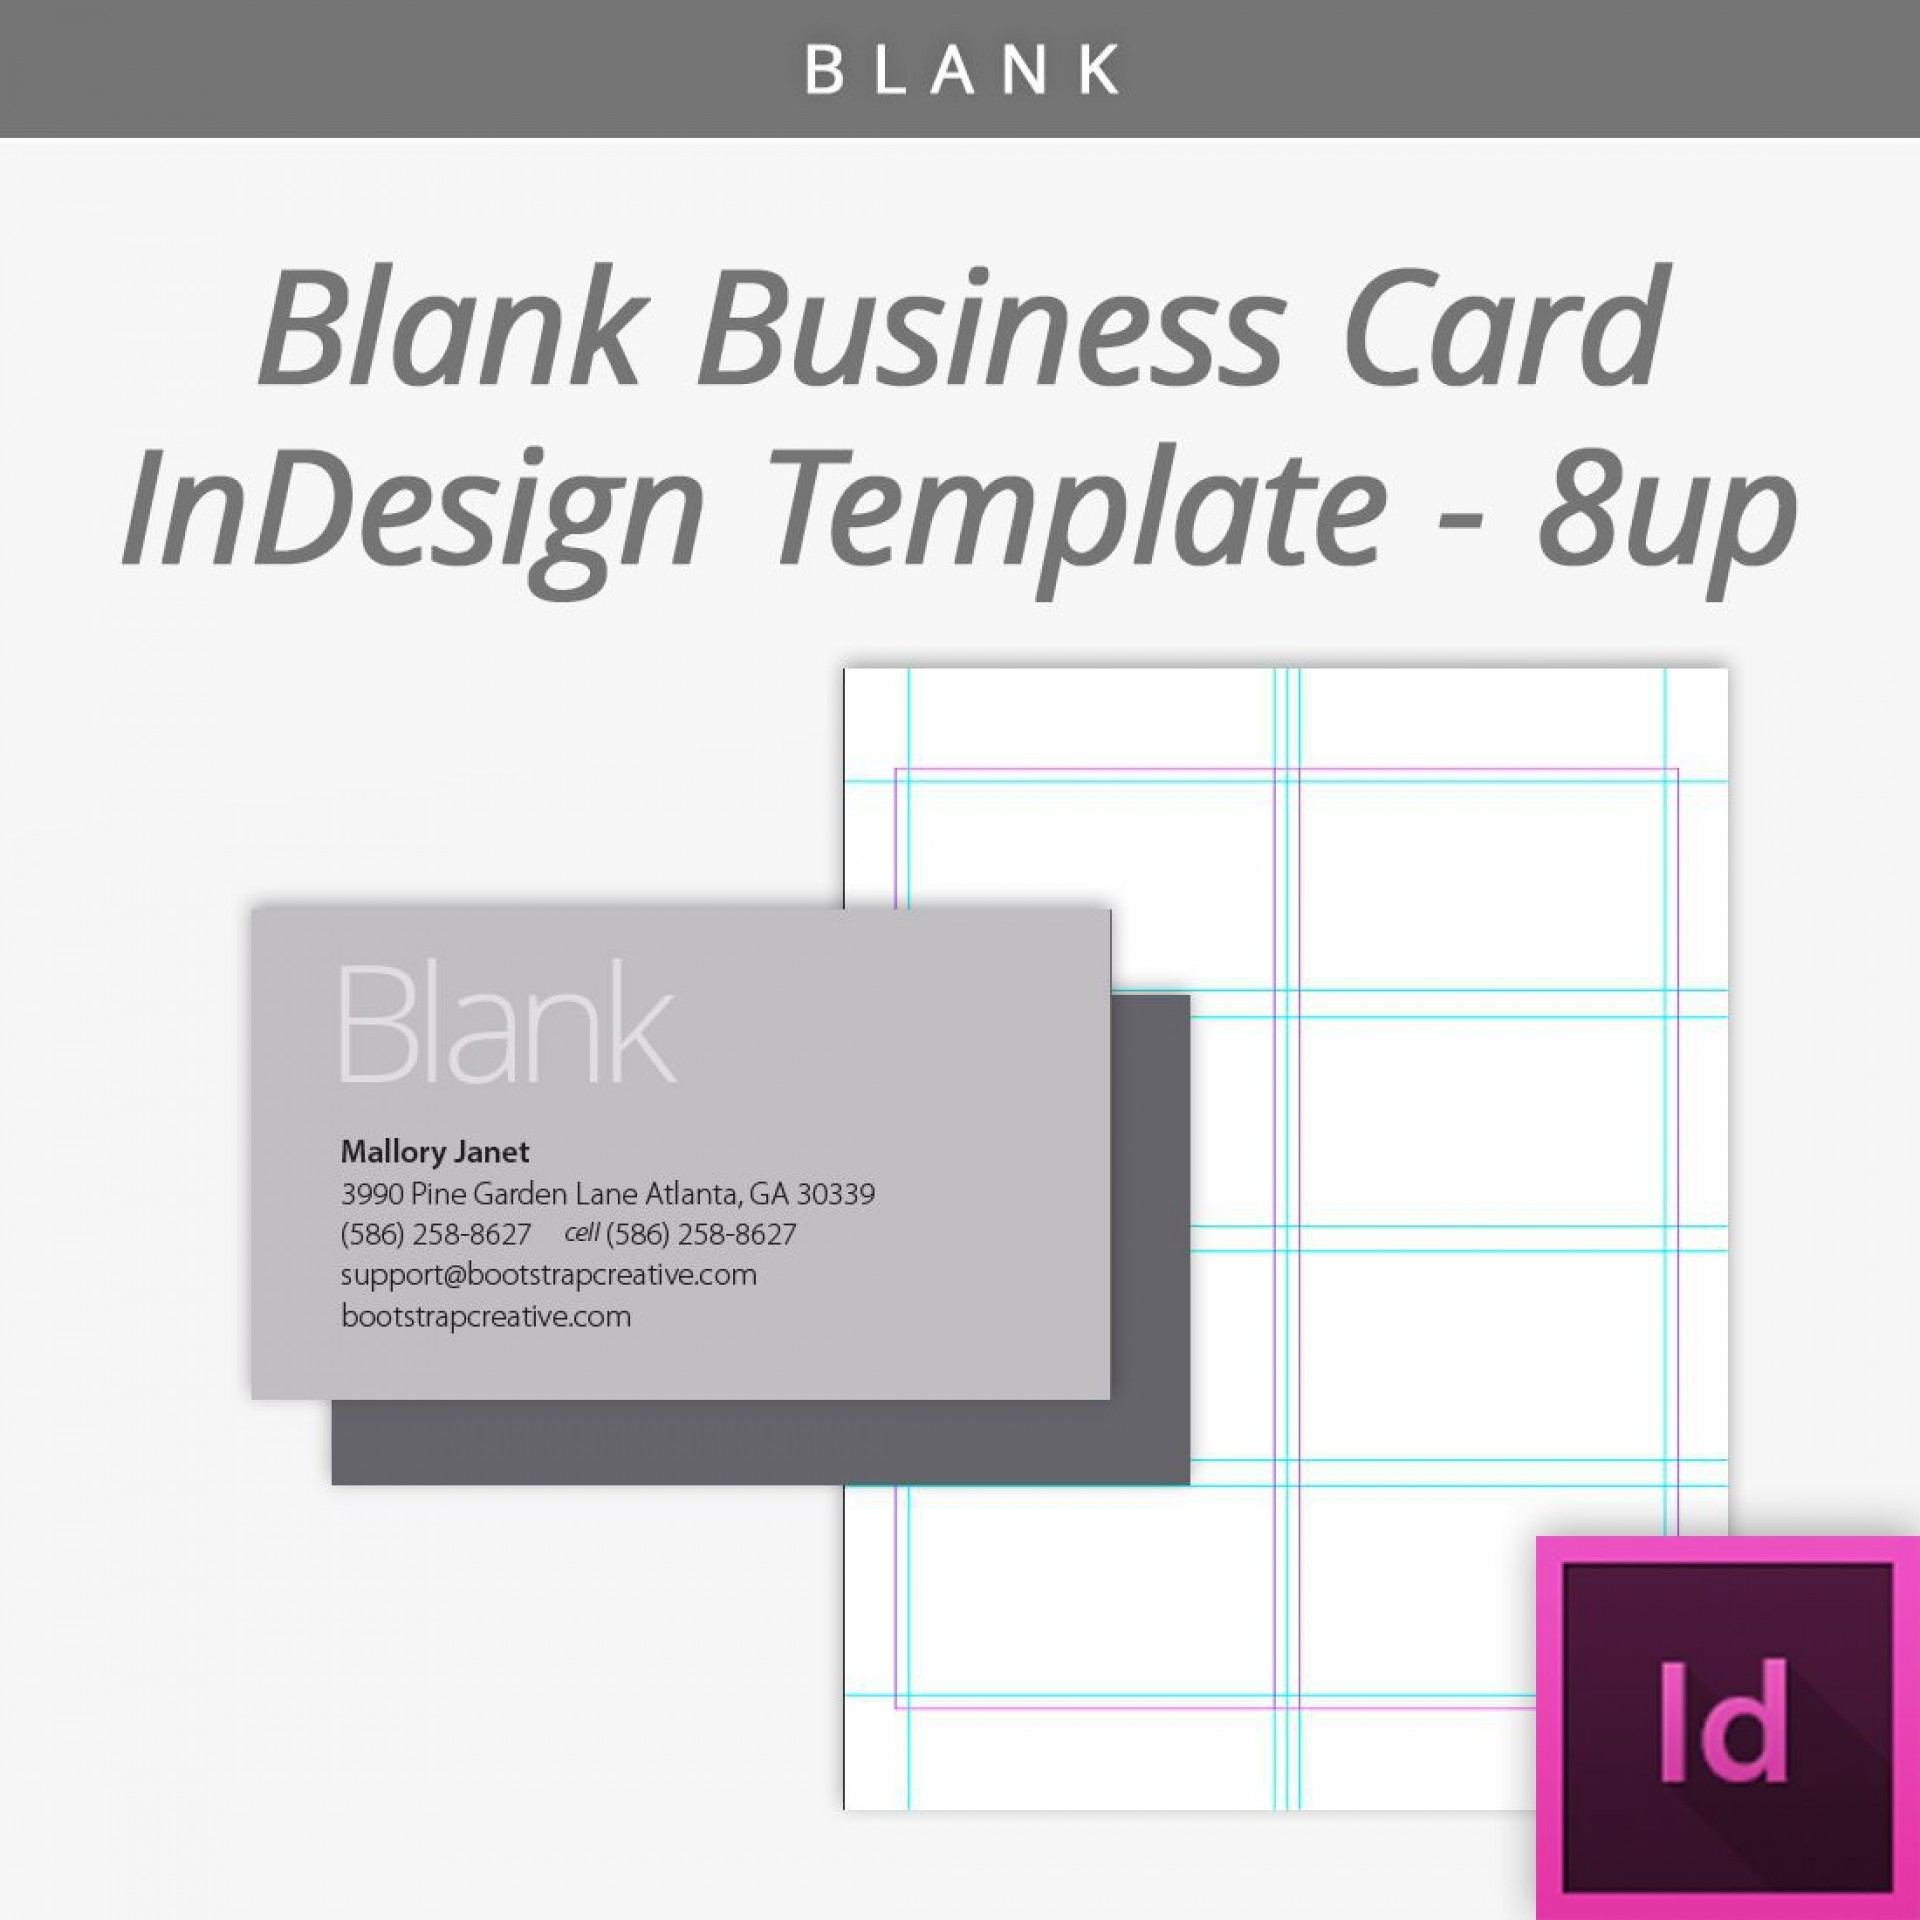 006 Exceptional Blank Busines Card Template Free Download Idea  Psd1920